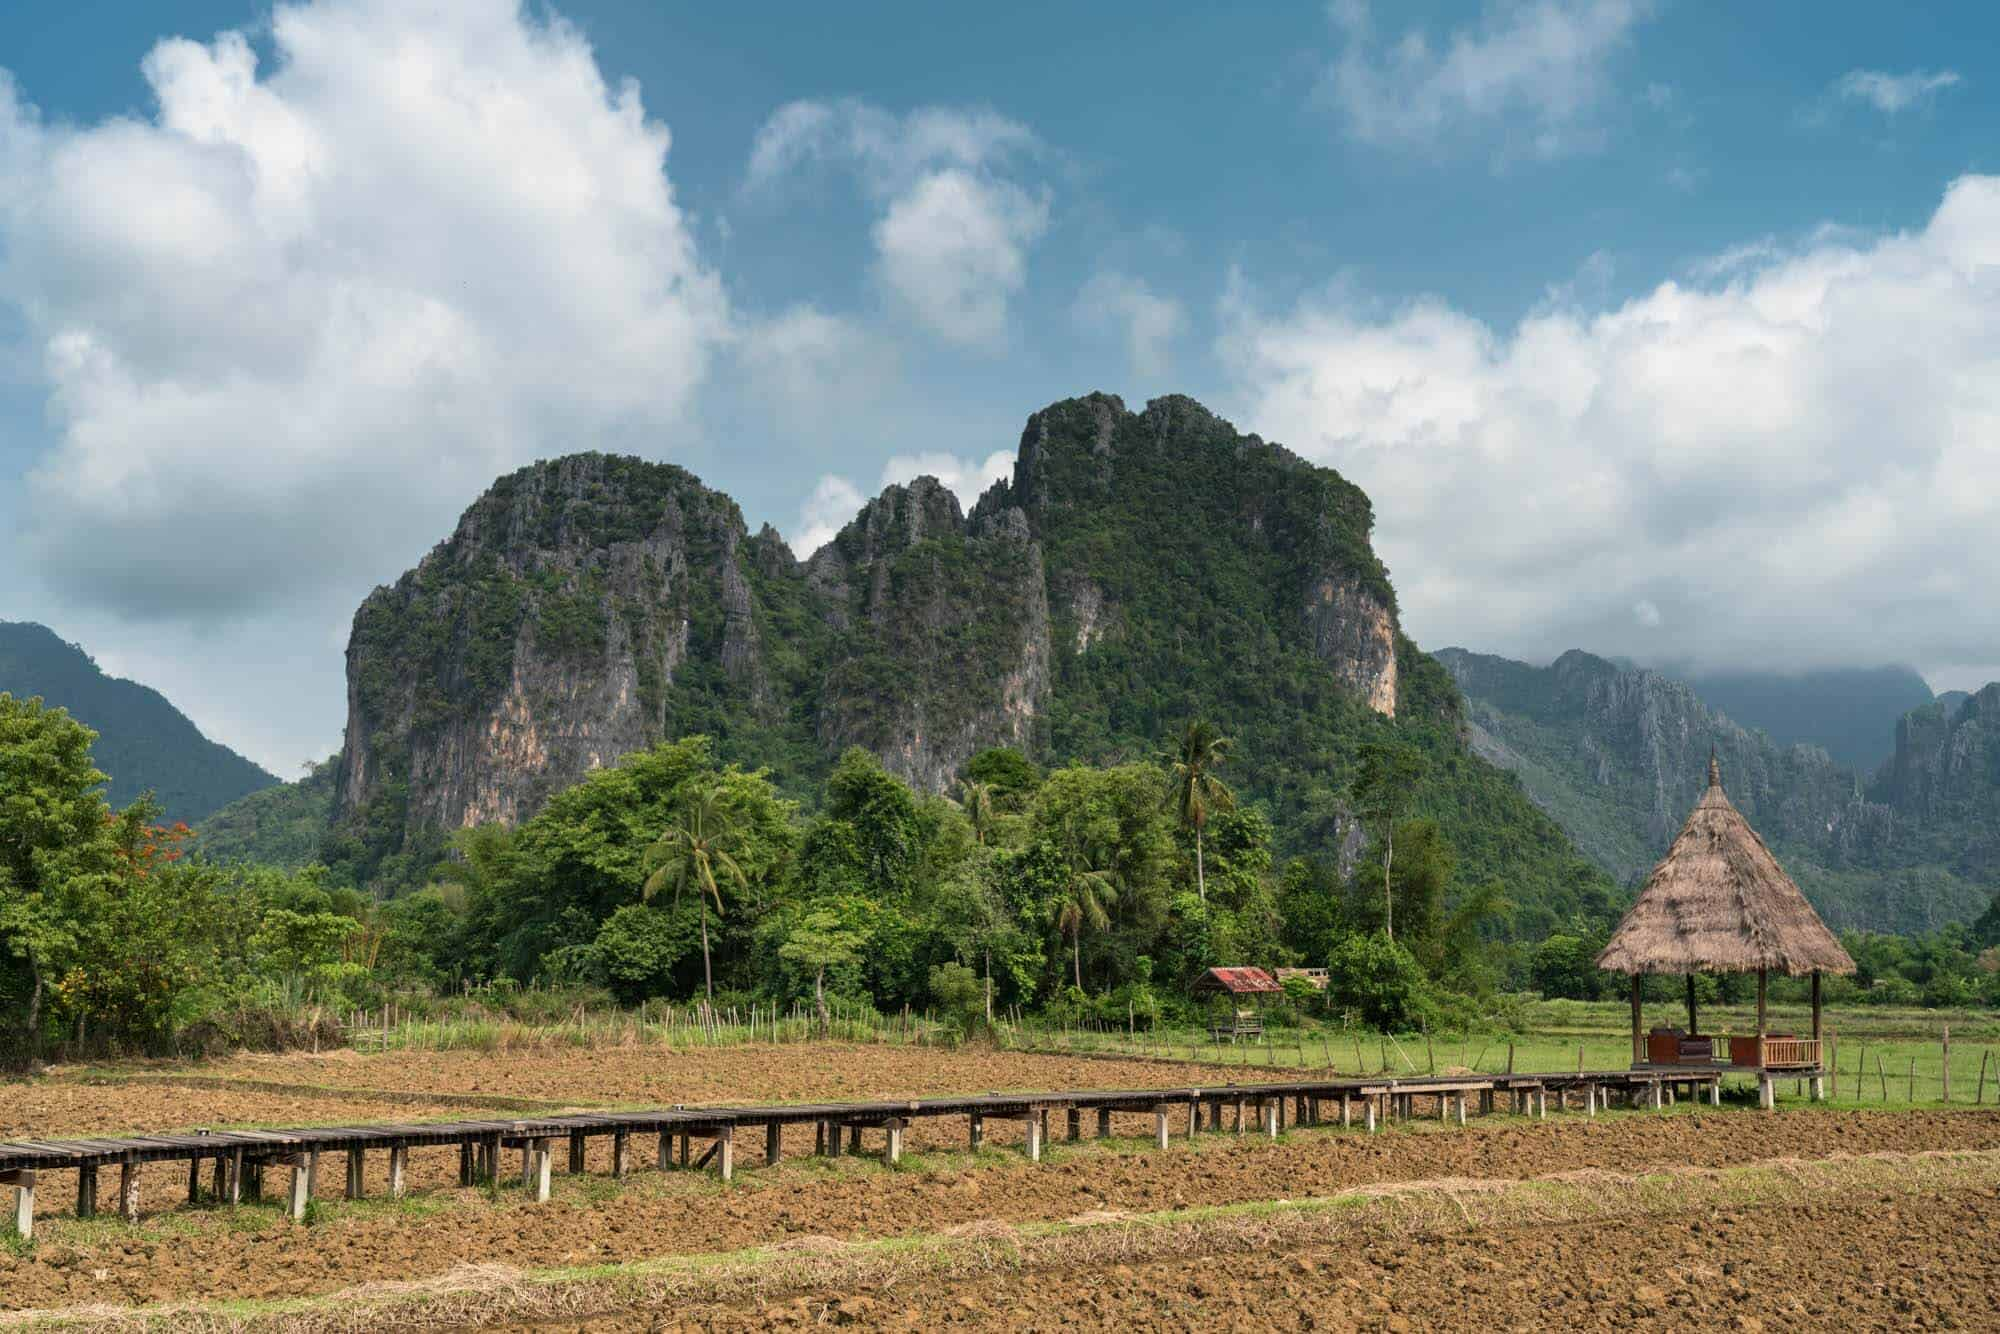 A photo of the rice fields and Vang Vieng mountains during dry season